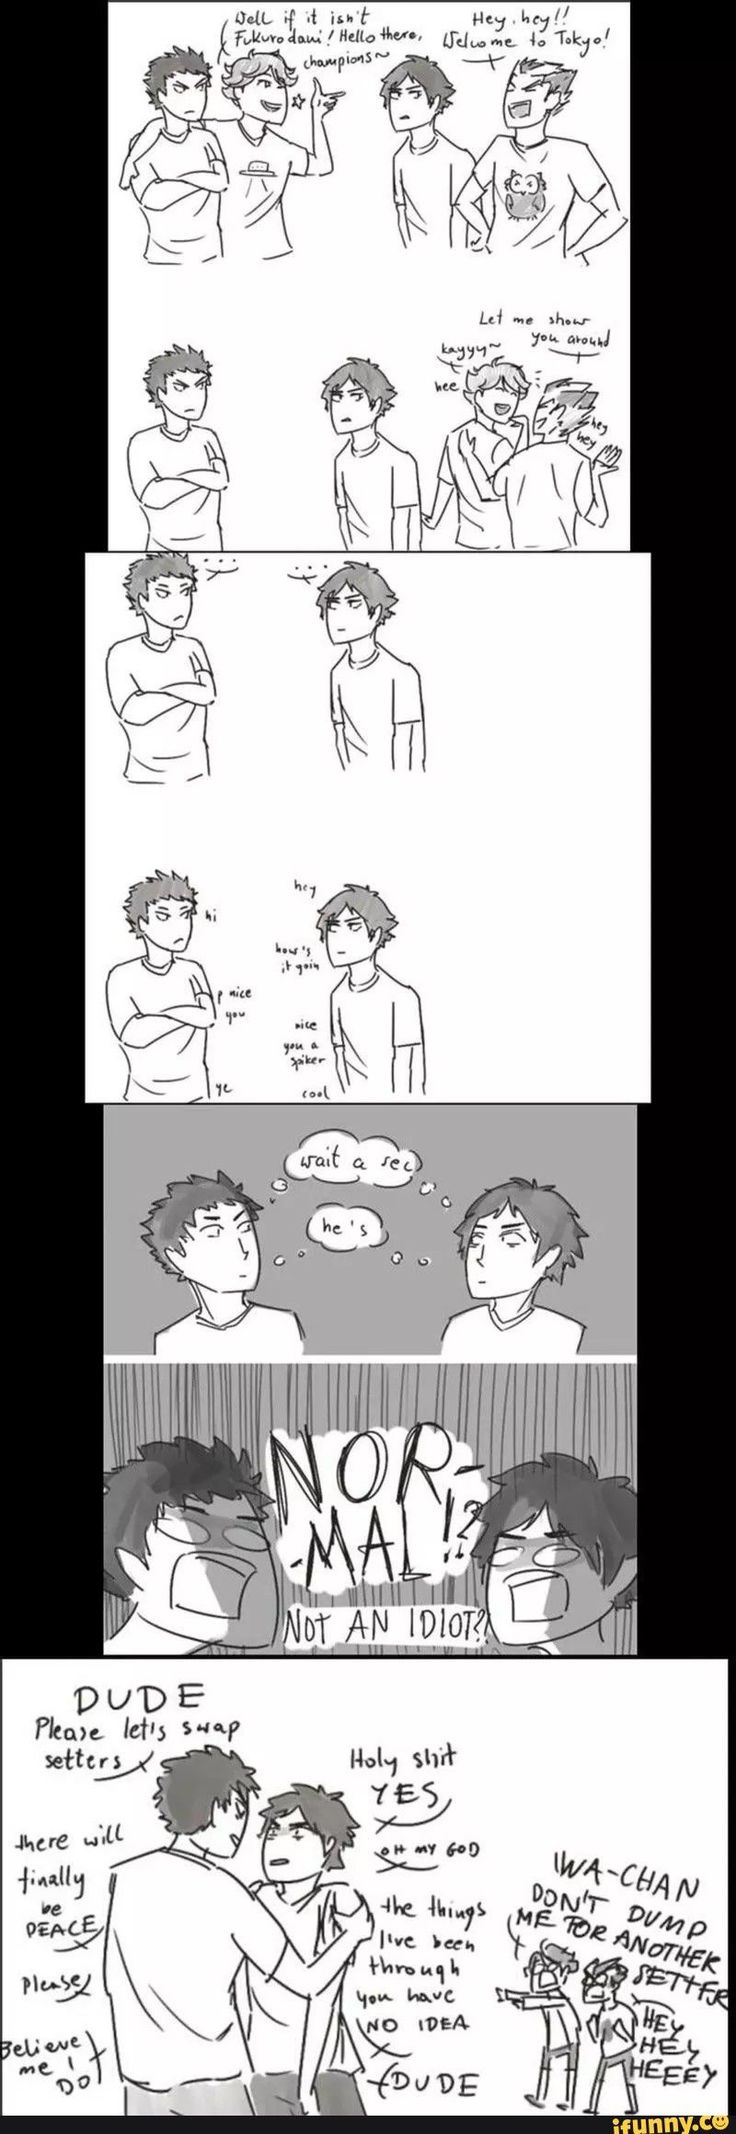 Iwaizumi and Akaashi bonding featuring Oikawa and Bokuto